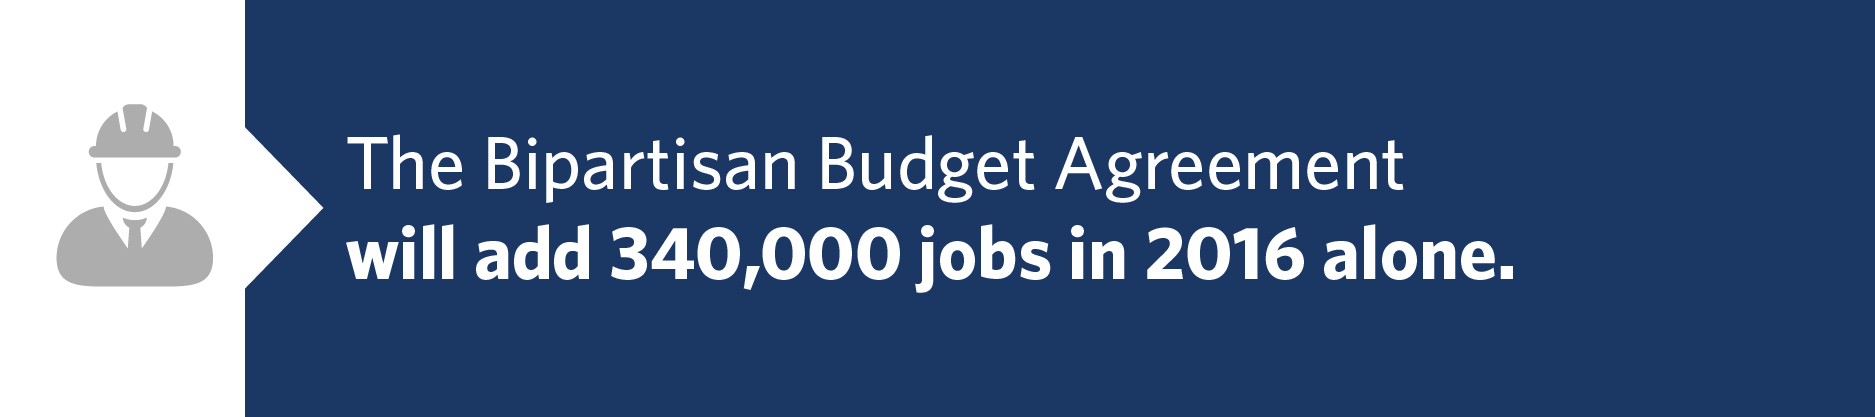 Bipartisan Budget Agreement Adds 340,000 Jobs